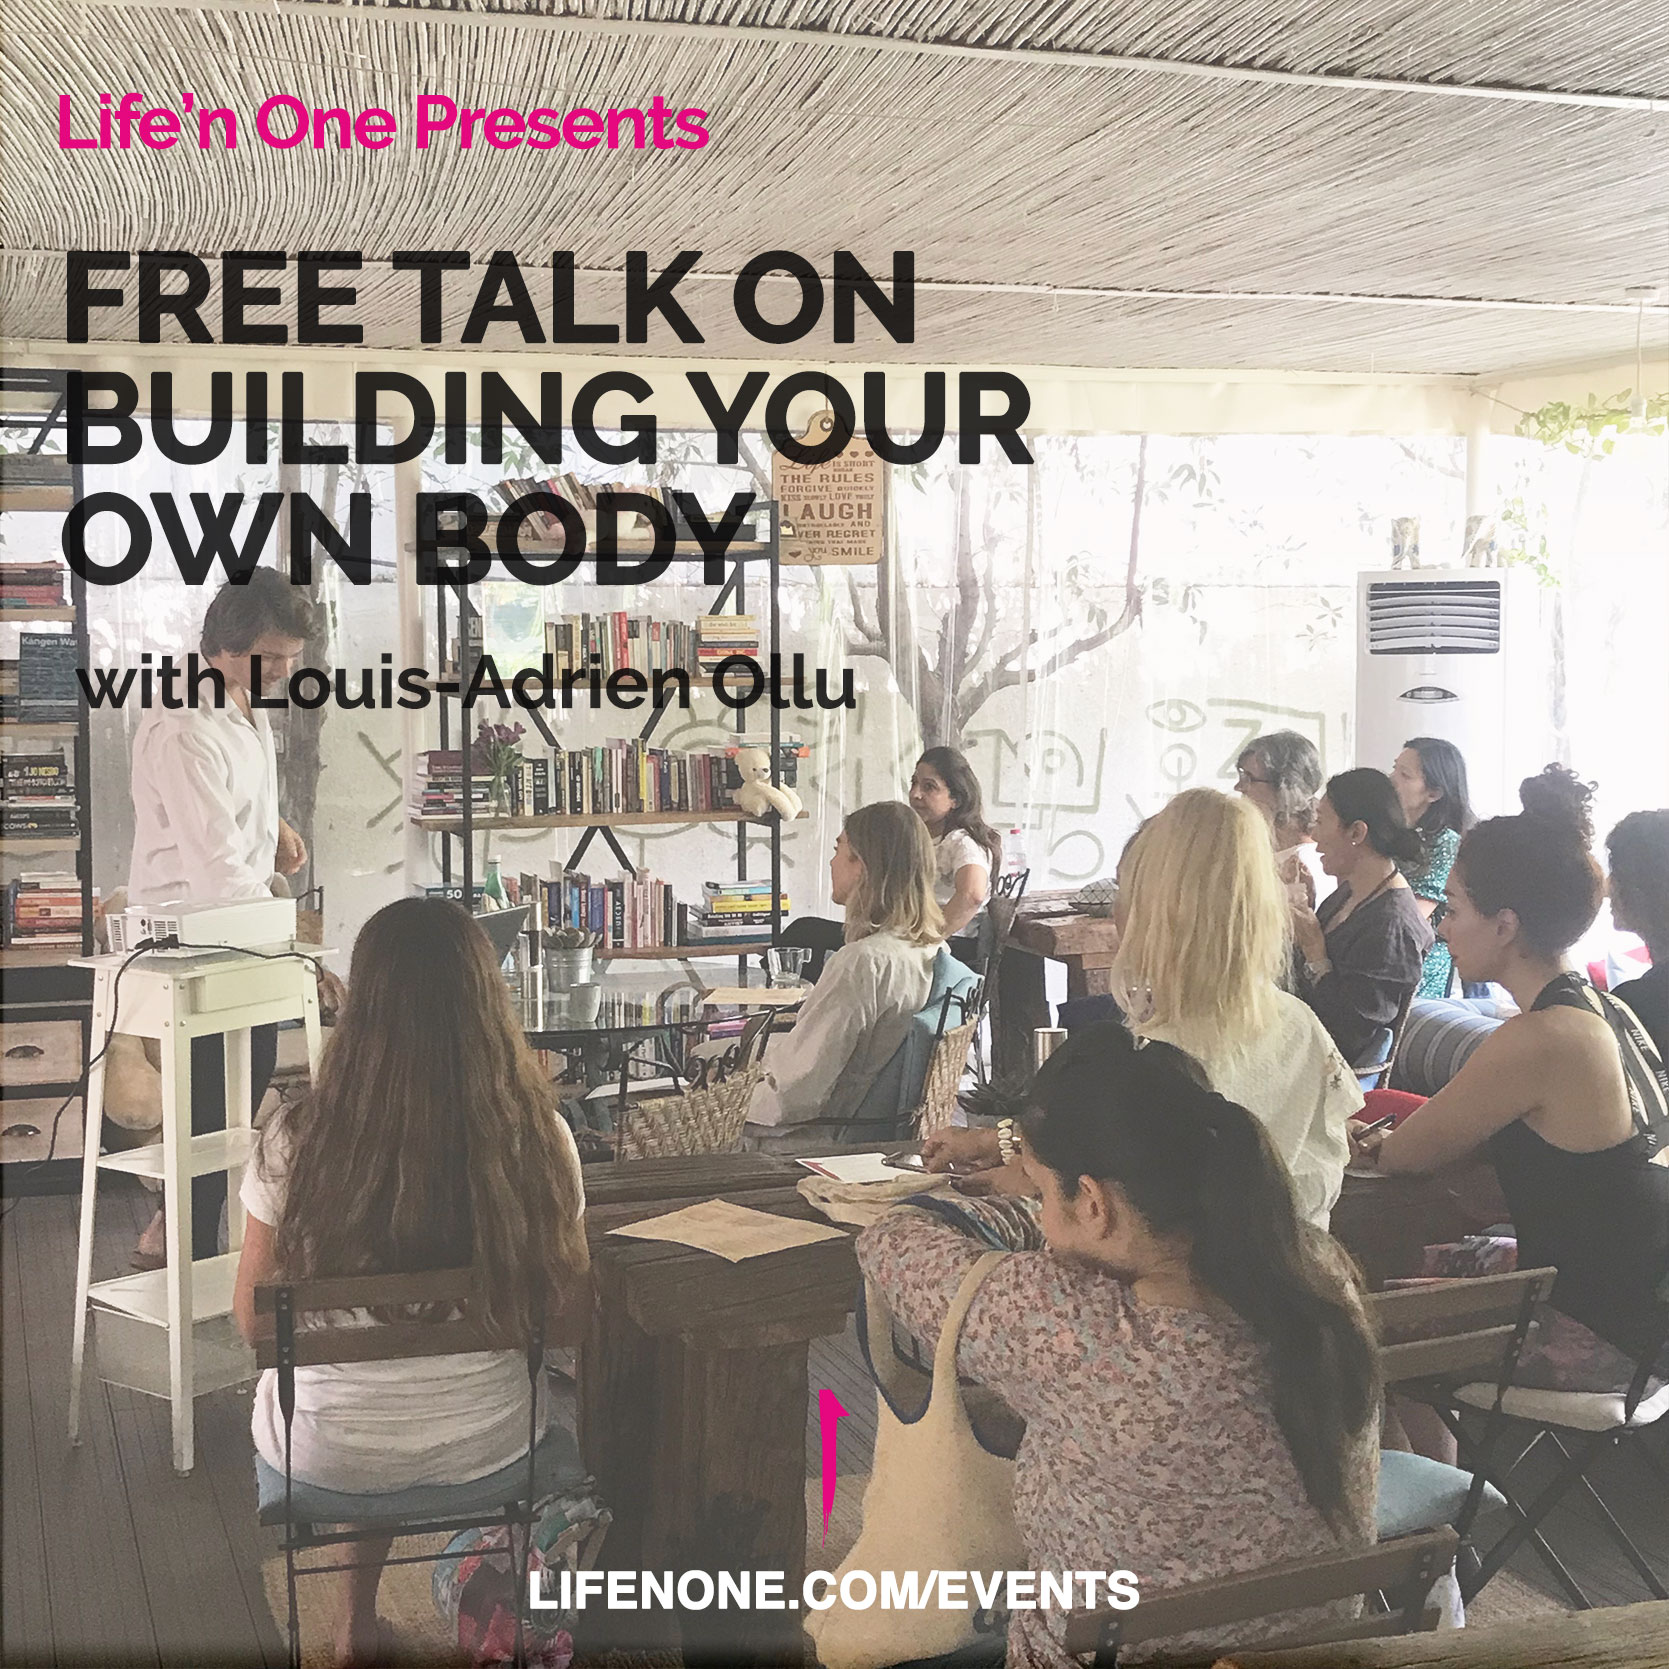 191011-Free-talk-on-building-your-own-body.jpg